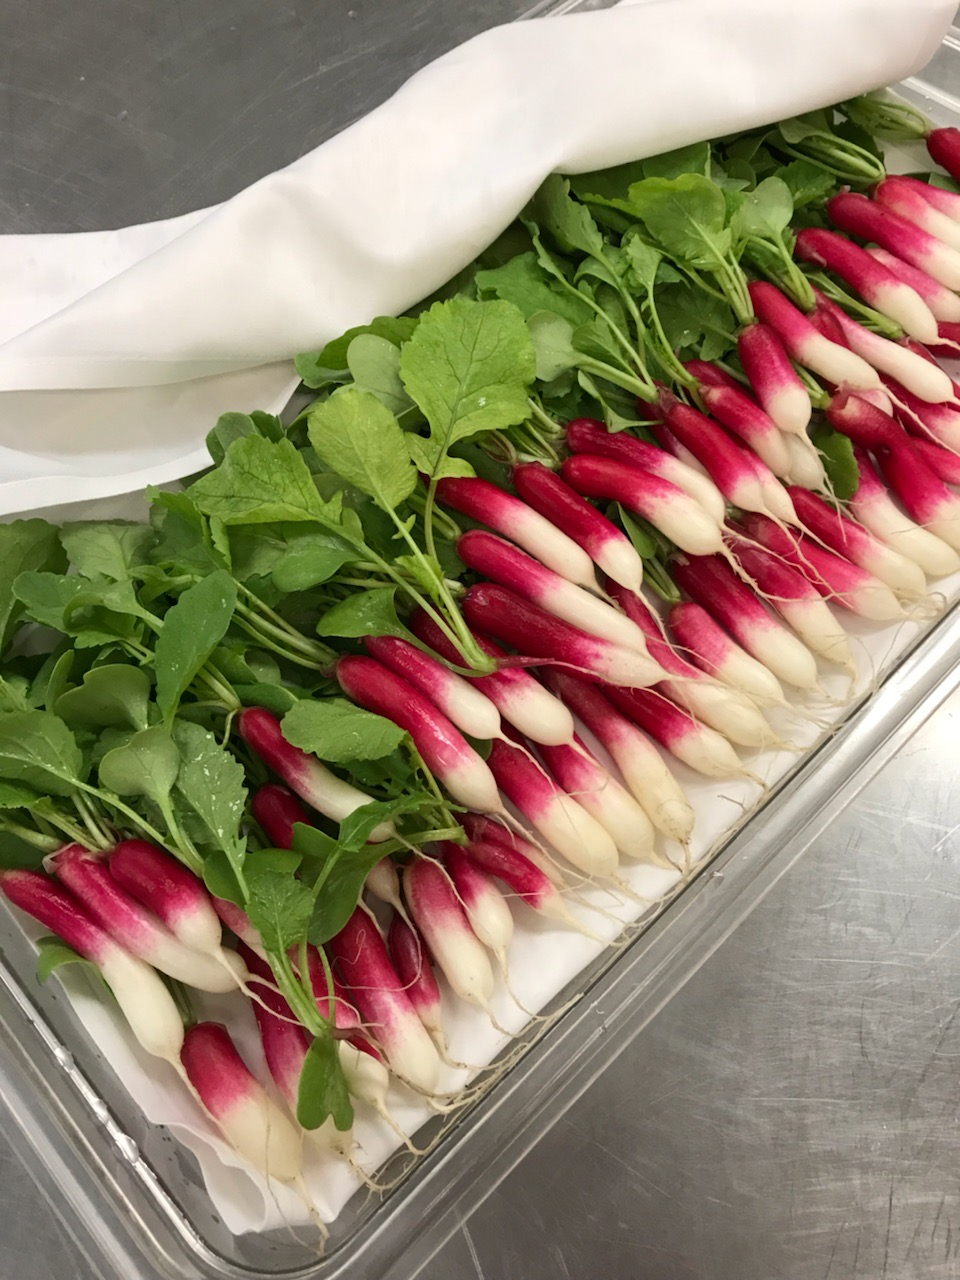 Radish harvest in the Waverly kitchen